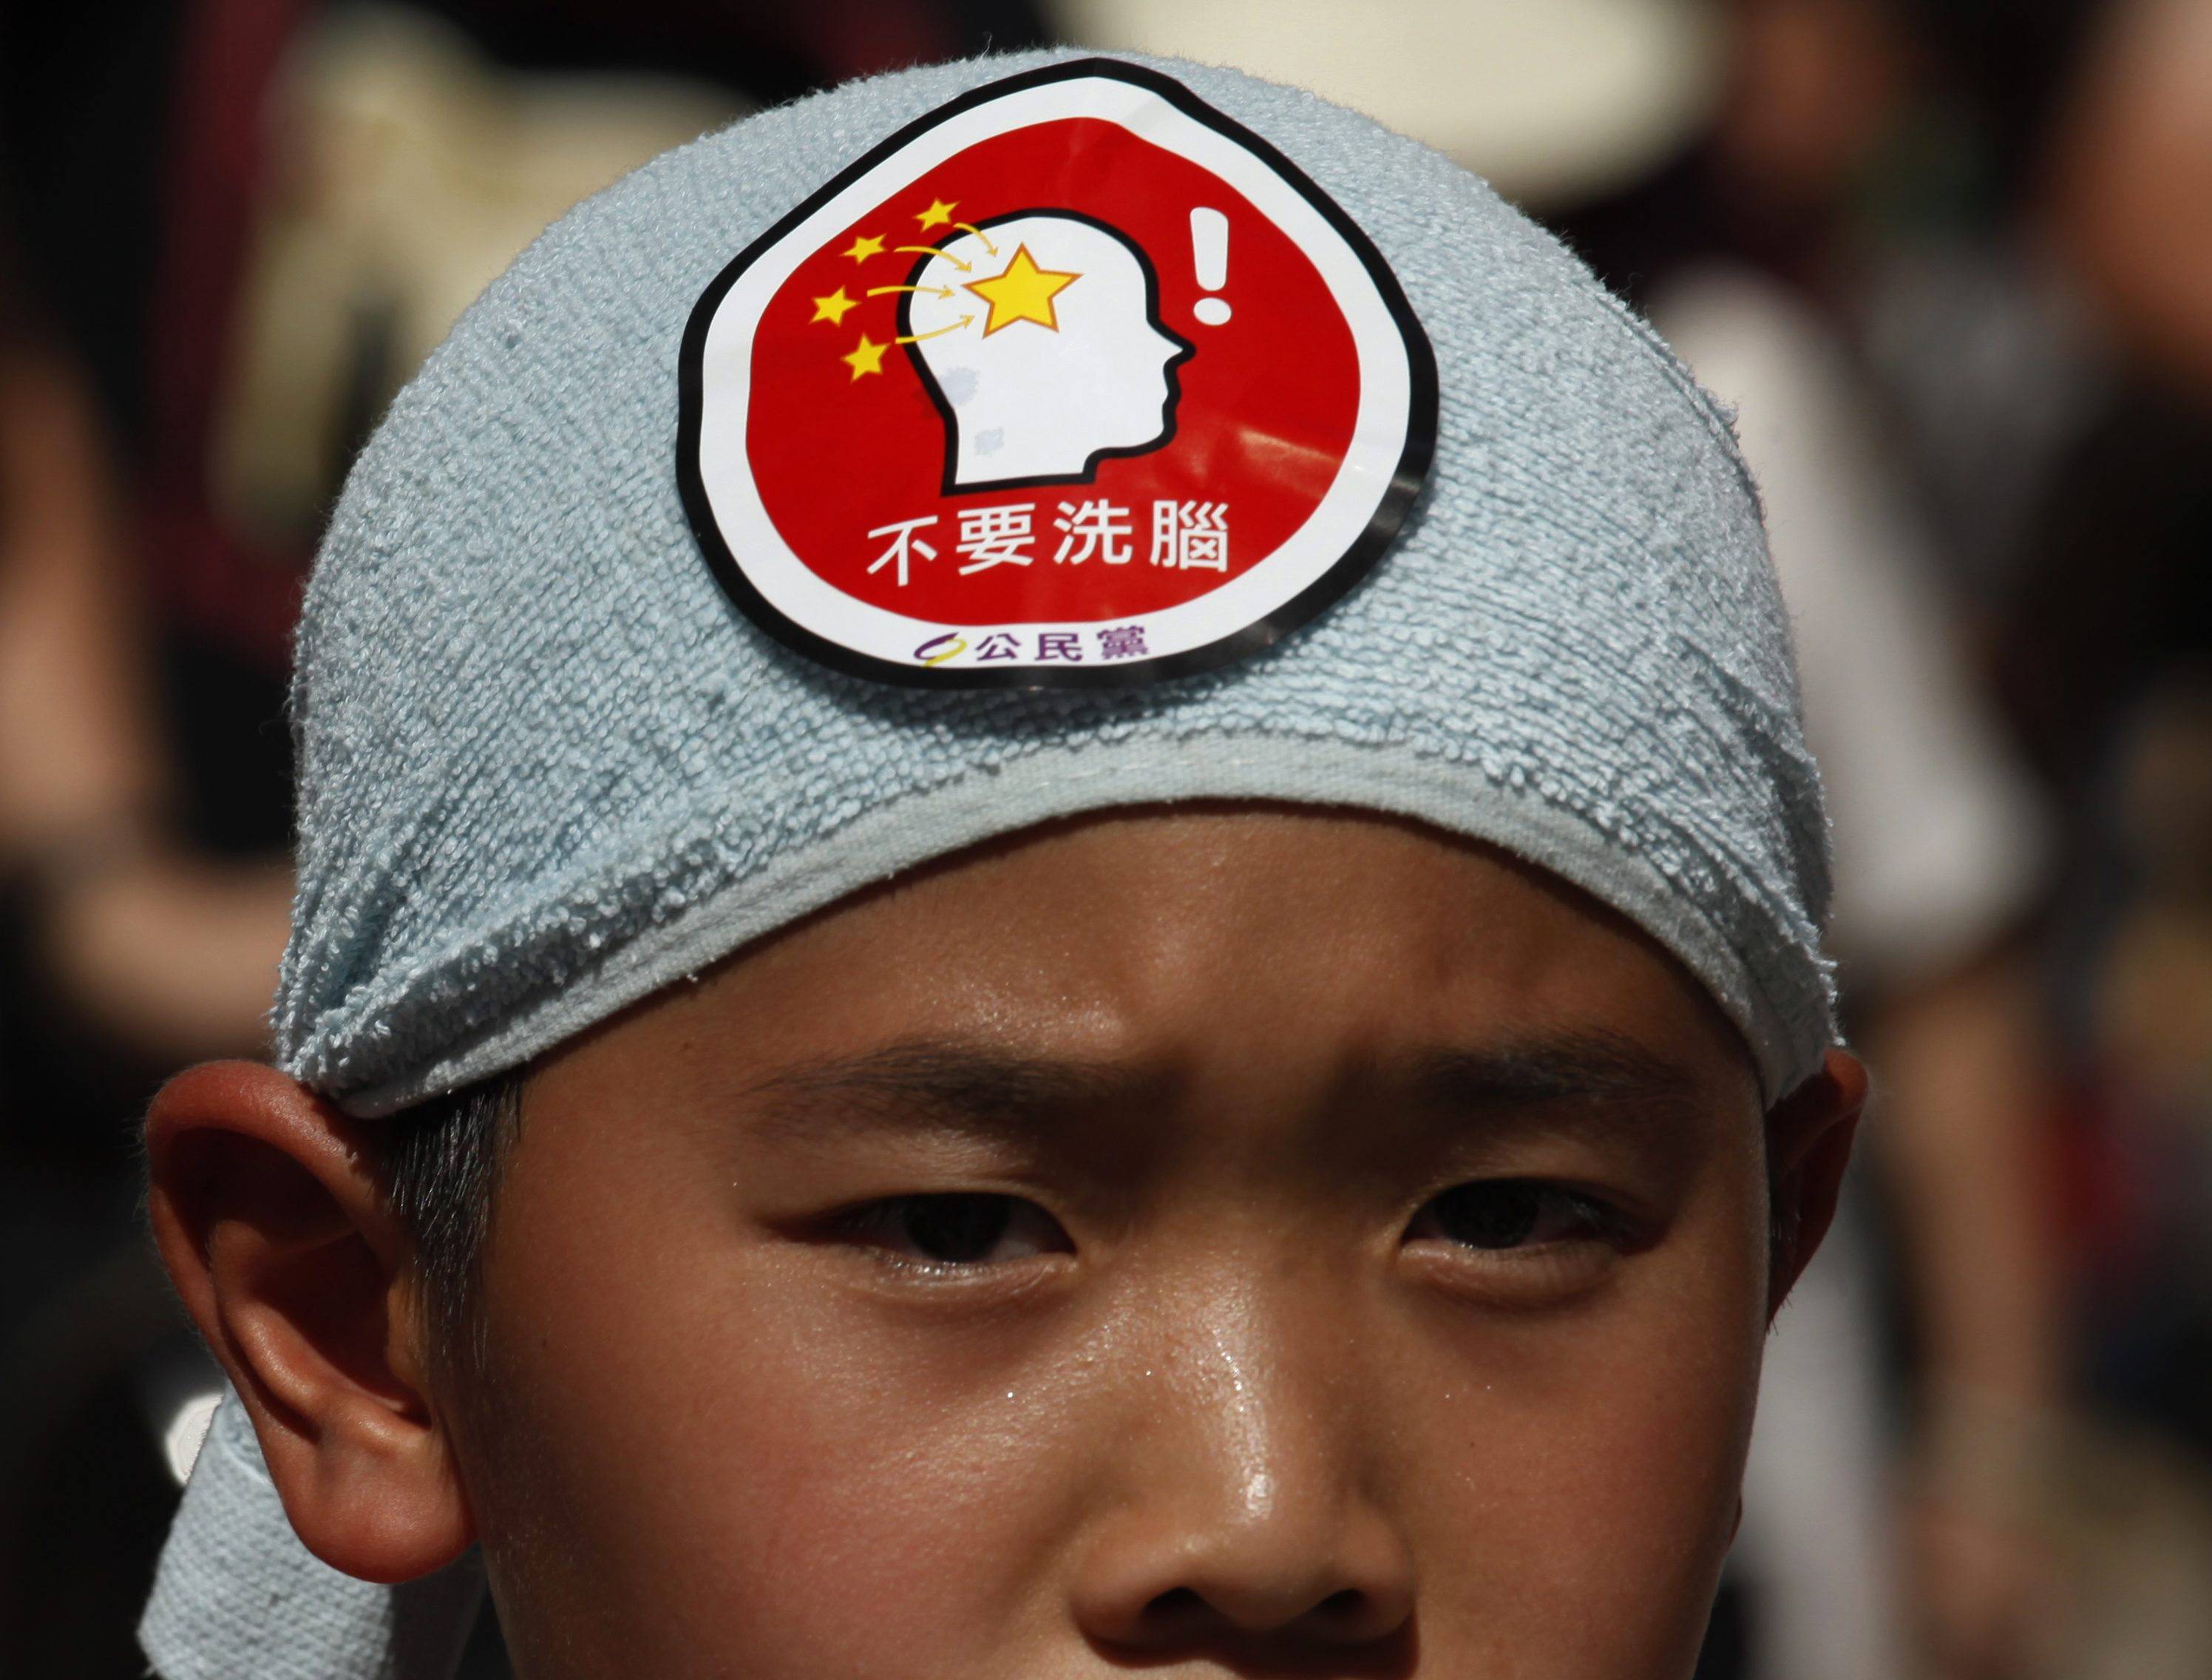 A child, bearing a sticker, protest against a Chinese patriotic education course in Hong Kong